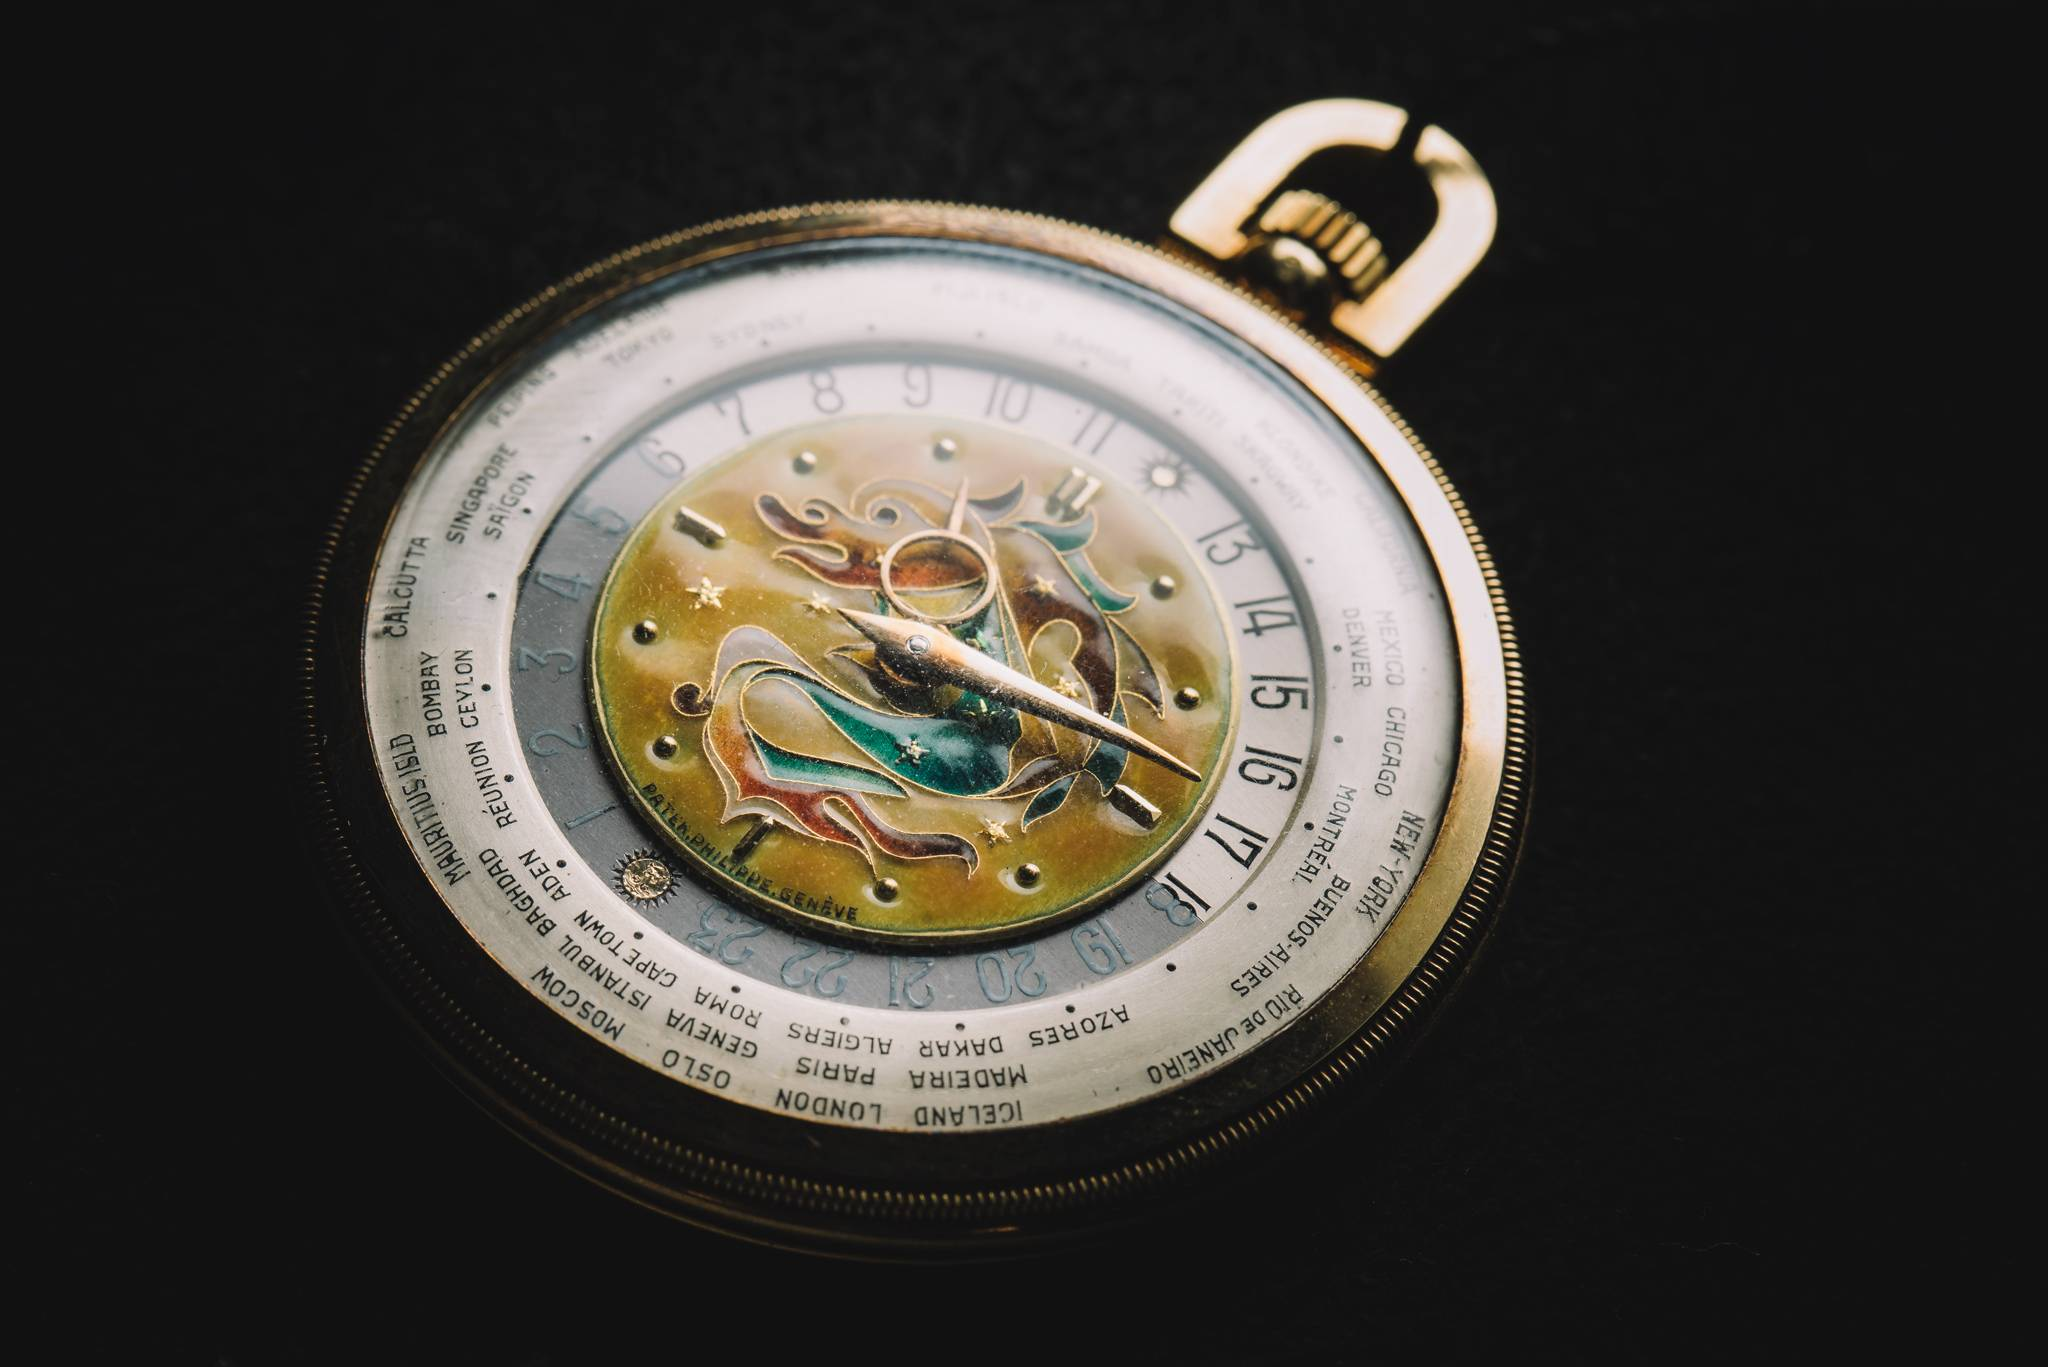 PATEK PHILIPPE 'The Star Dragon', Reference 605 HU, Yellow Gold, 1944-11